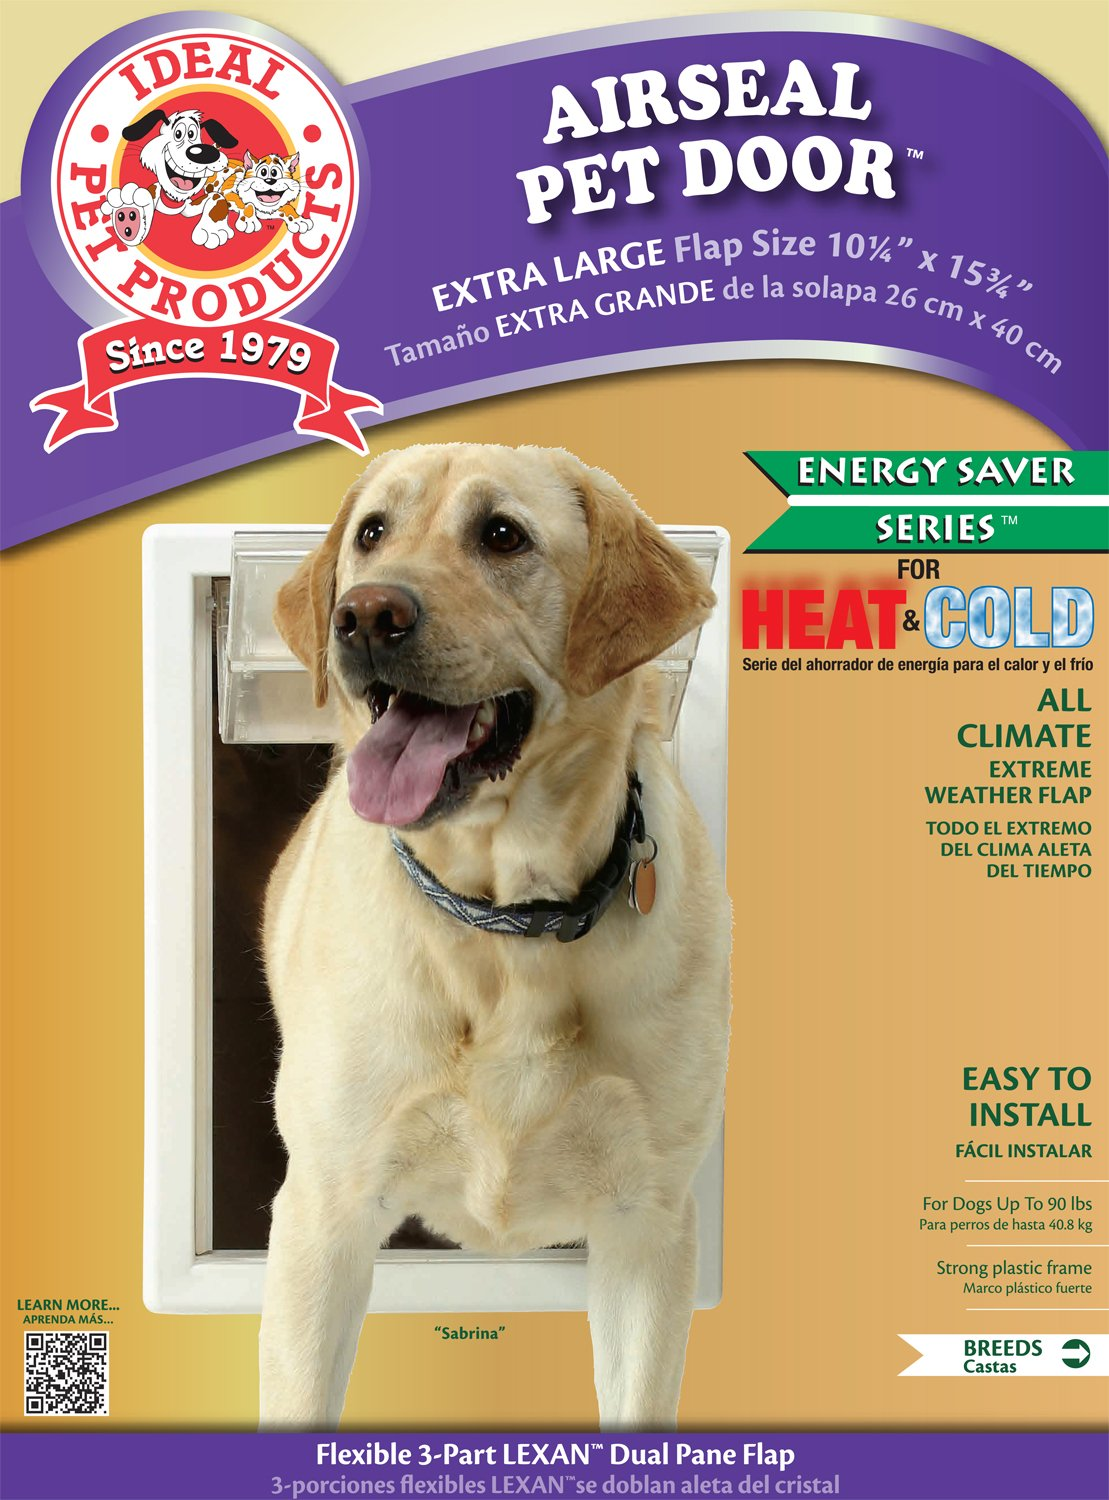 AirSeal Pet Door Extra Large by Ideal Pet Products